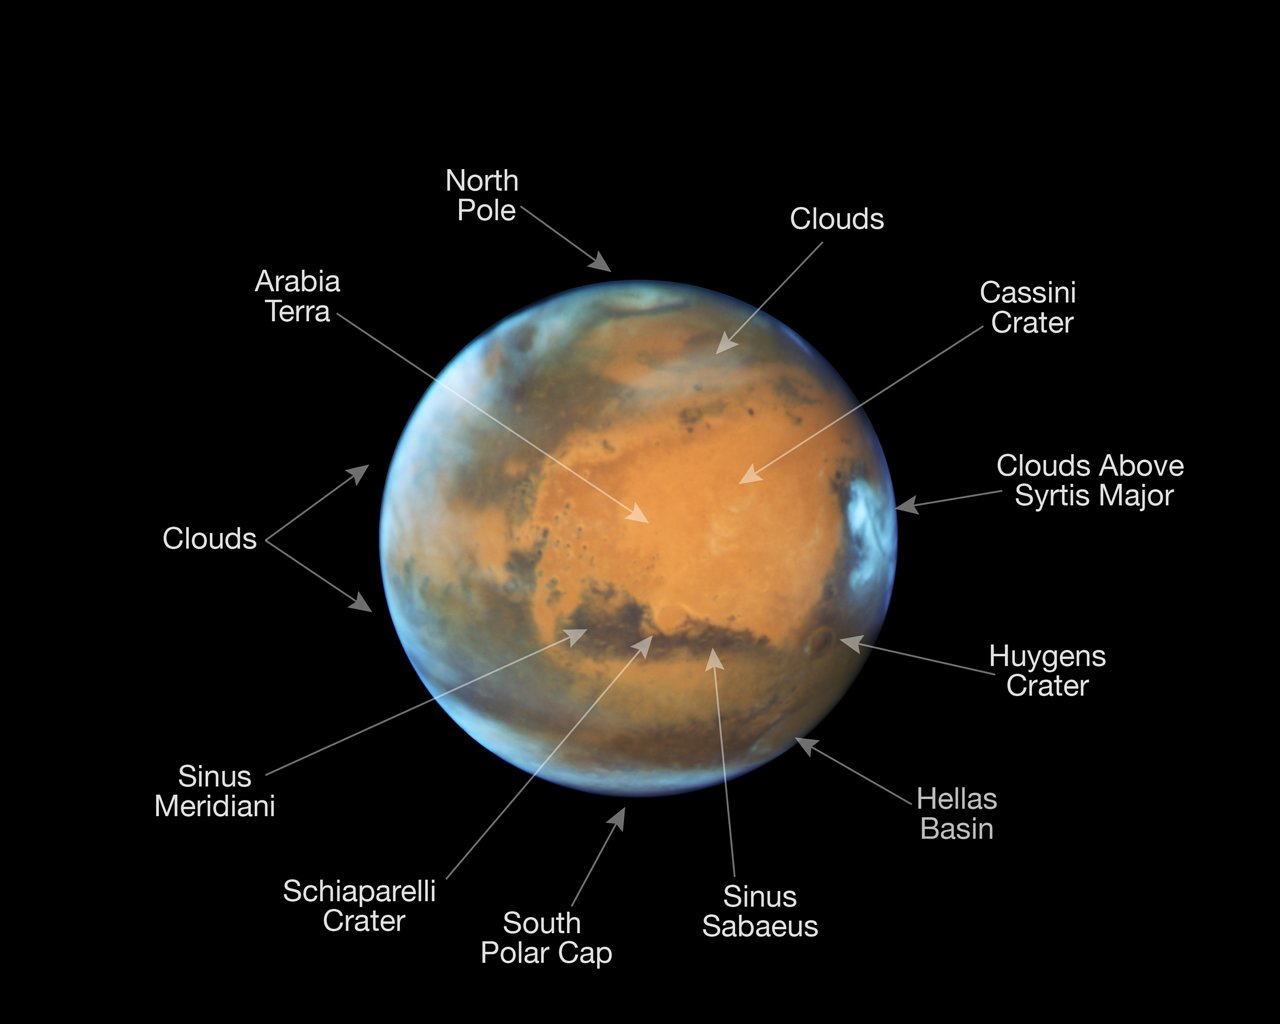 This image shows our neighbouring planet Mars, as it was observed shortly before opposition in 2016 by the NASA/ESA Hubble Space Telescope.  Some prominent features on the surface of the planet have been annotated. - Image    Credit:   NASA,ESA, the Hubble Heritage Team (STScI/AURA), J. Bell (ASU), and M. Wolff (Space Science Institute)